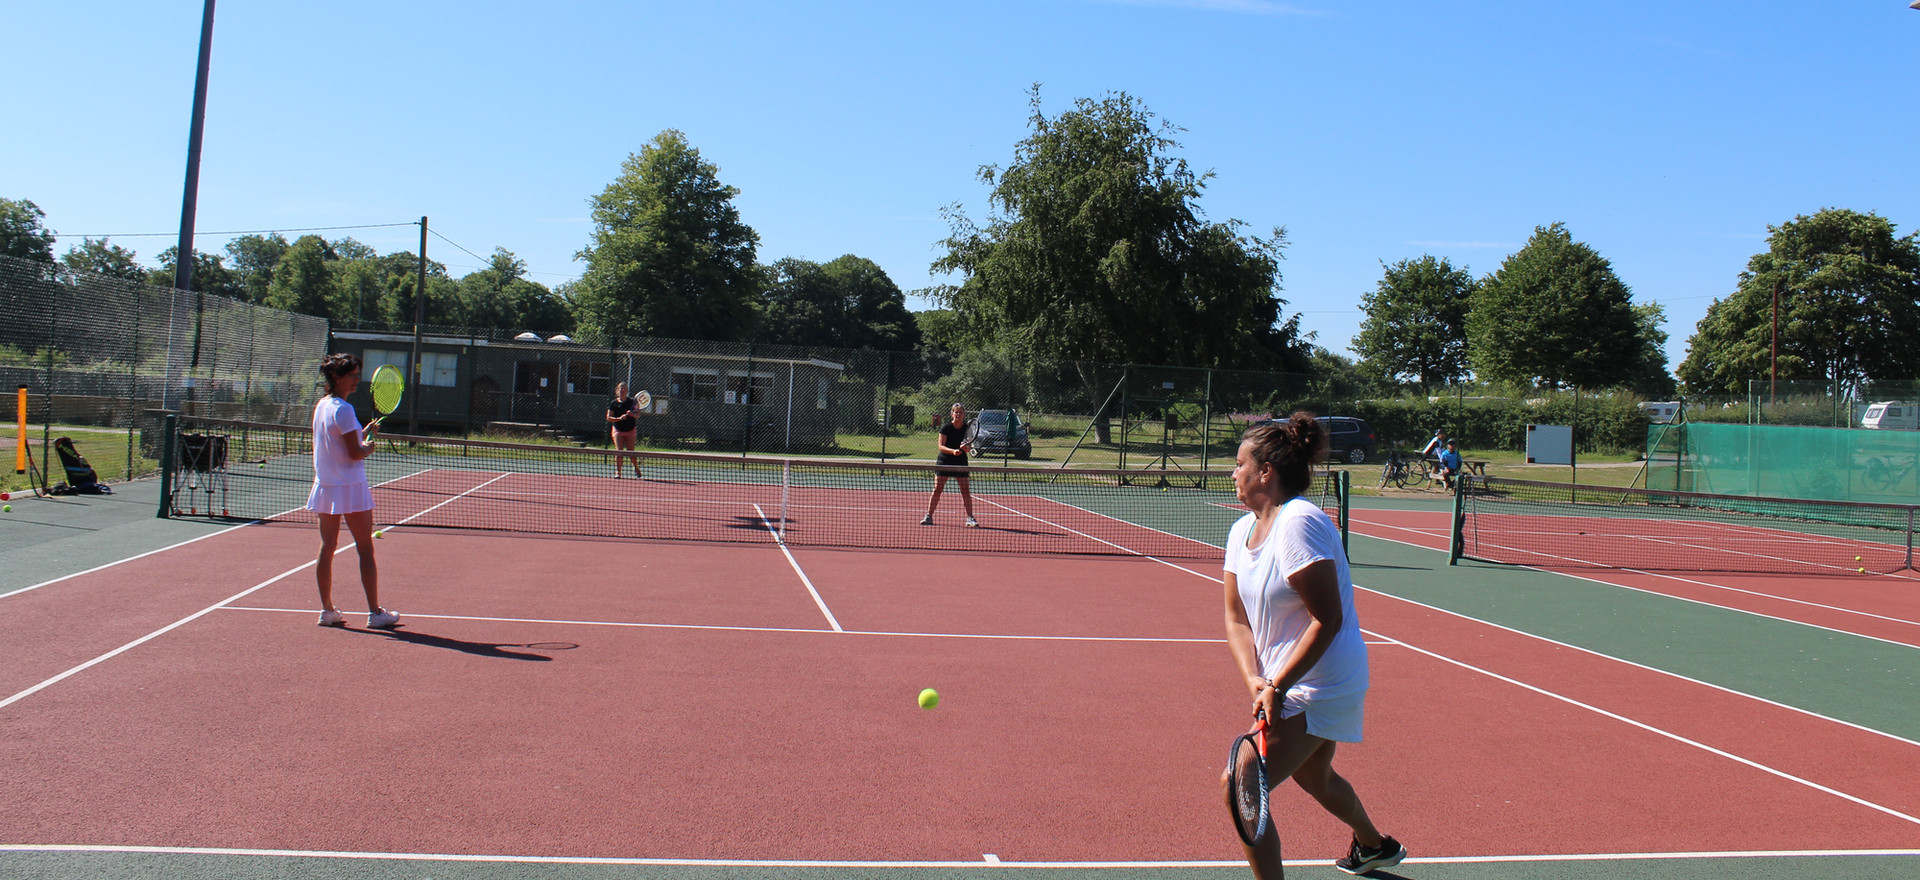 Ladies doubles on a warm Tuesday evening in August